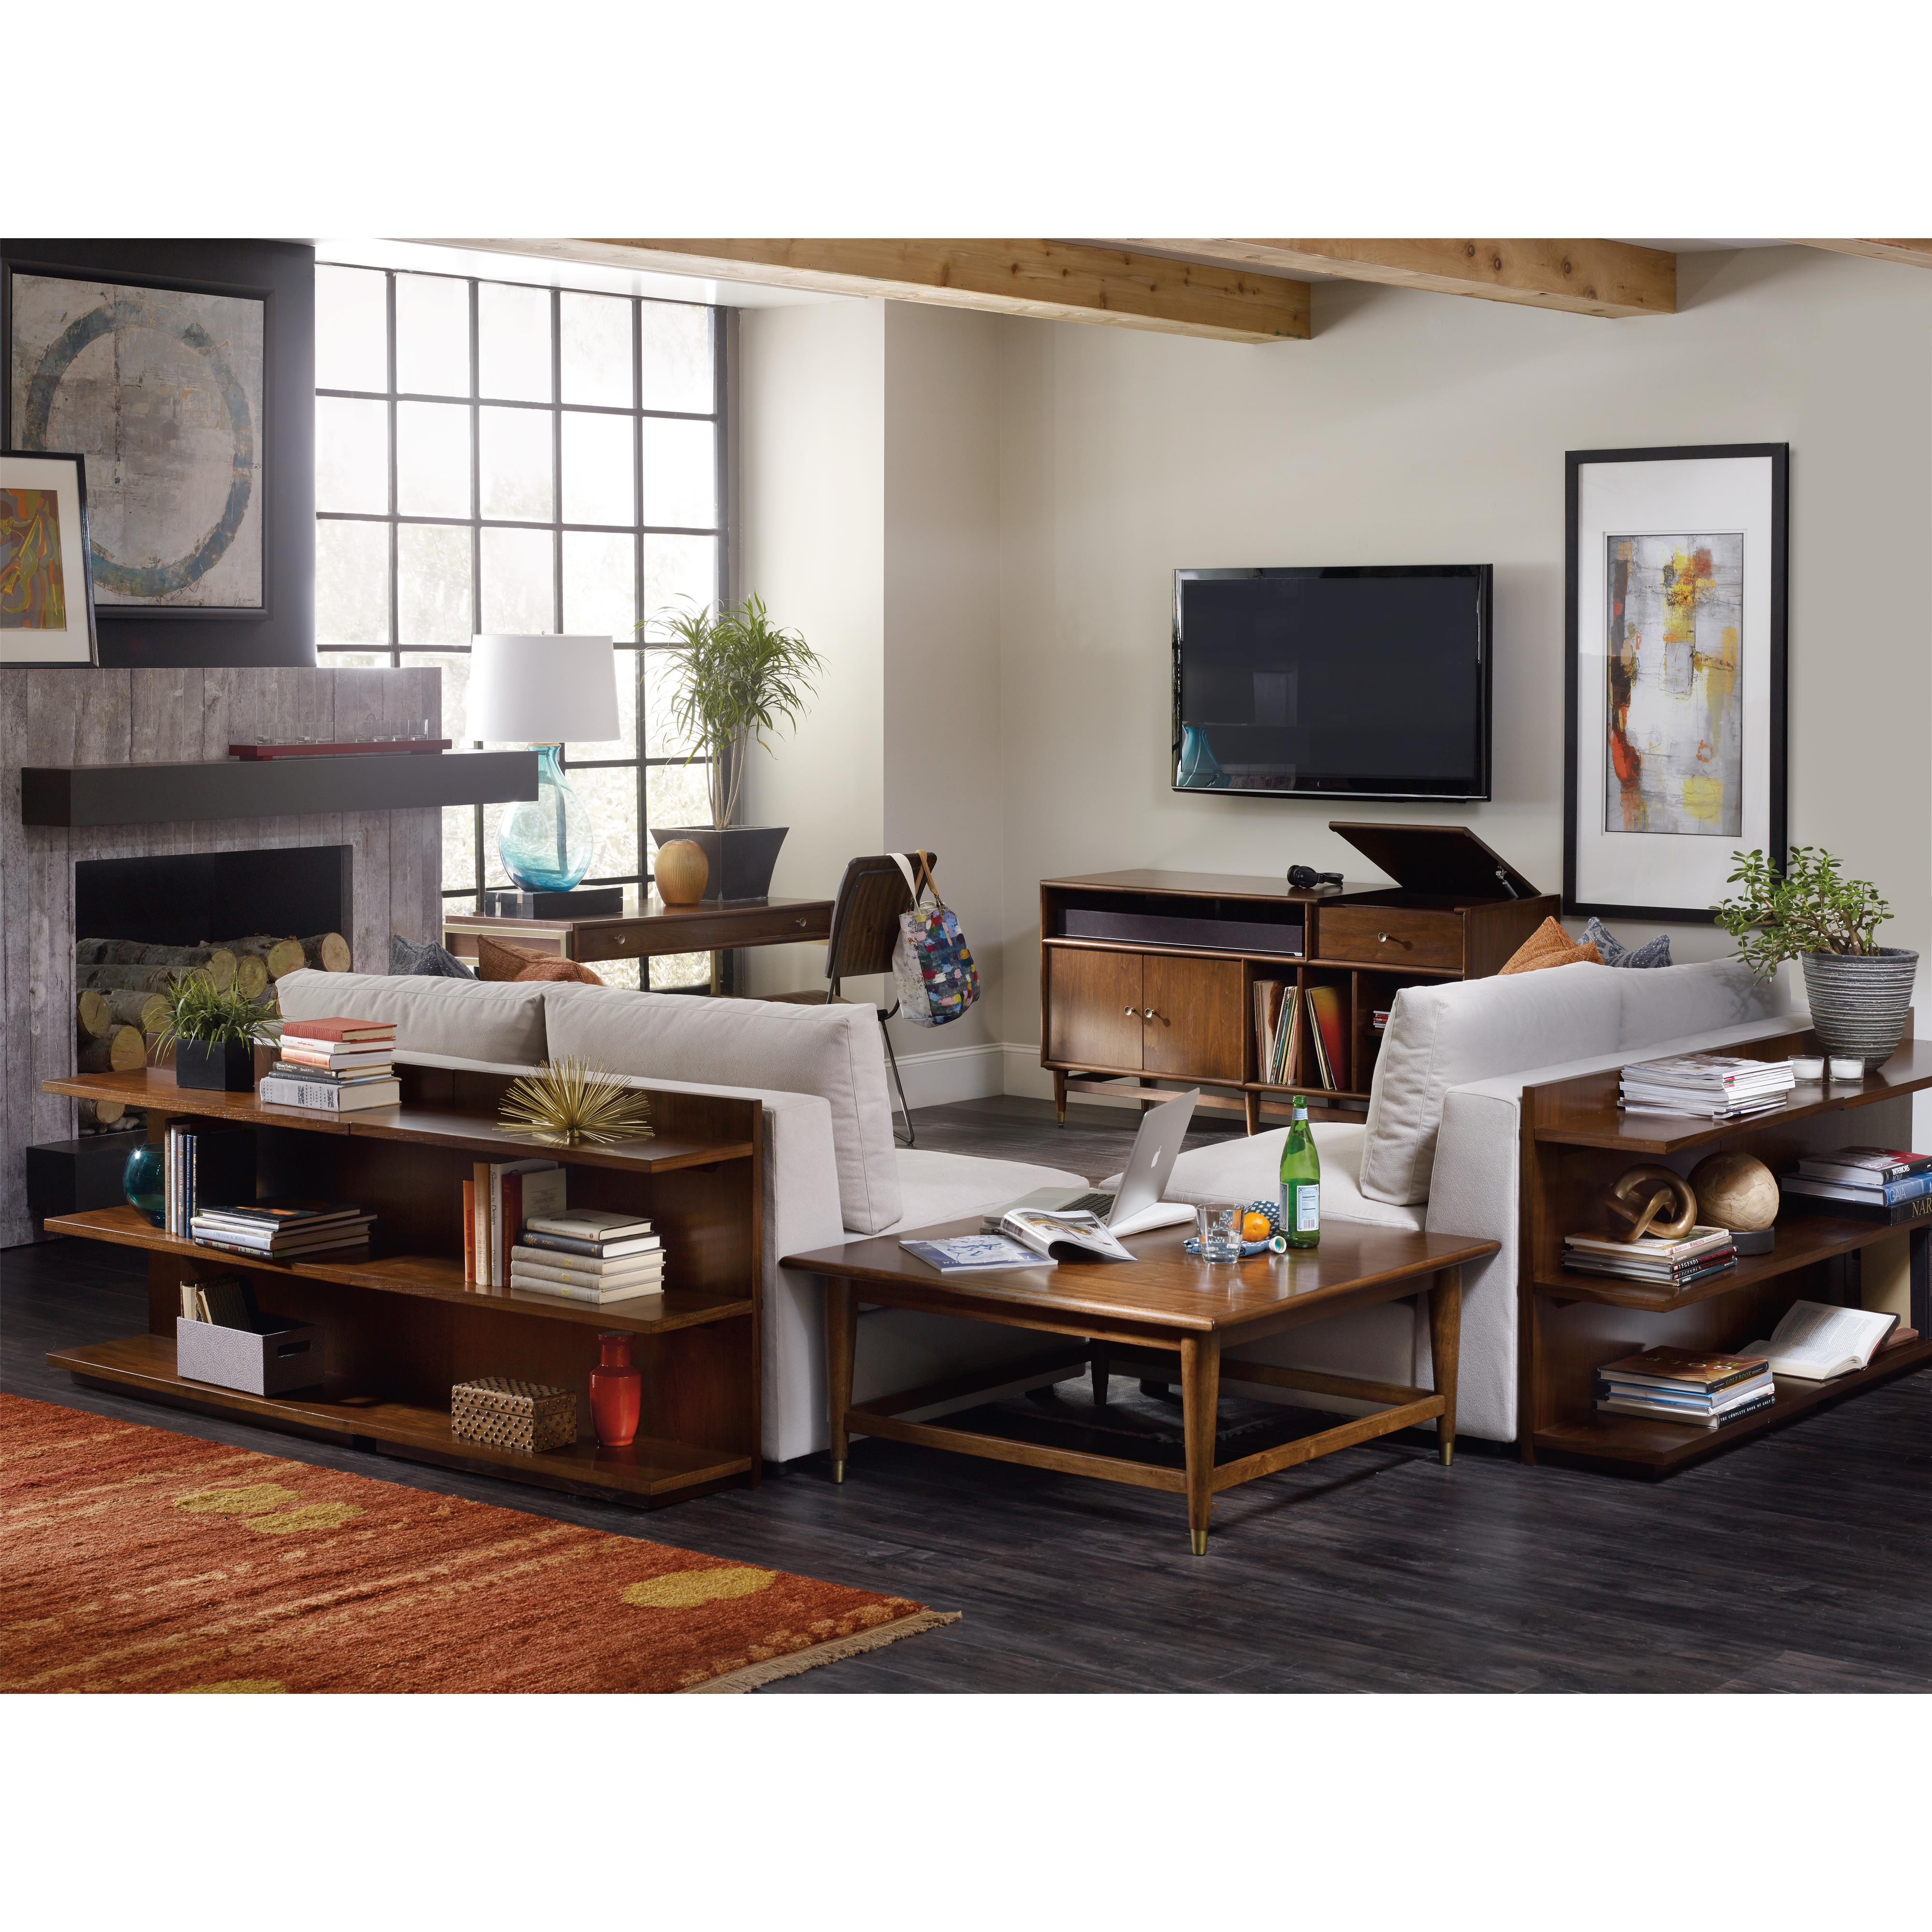 chapter two sofa bookcase console with shelves hooker furniture products color studio table between accent chairs west elm terrace coffee white couch covers big lots couches tall